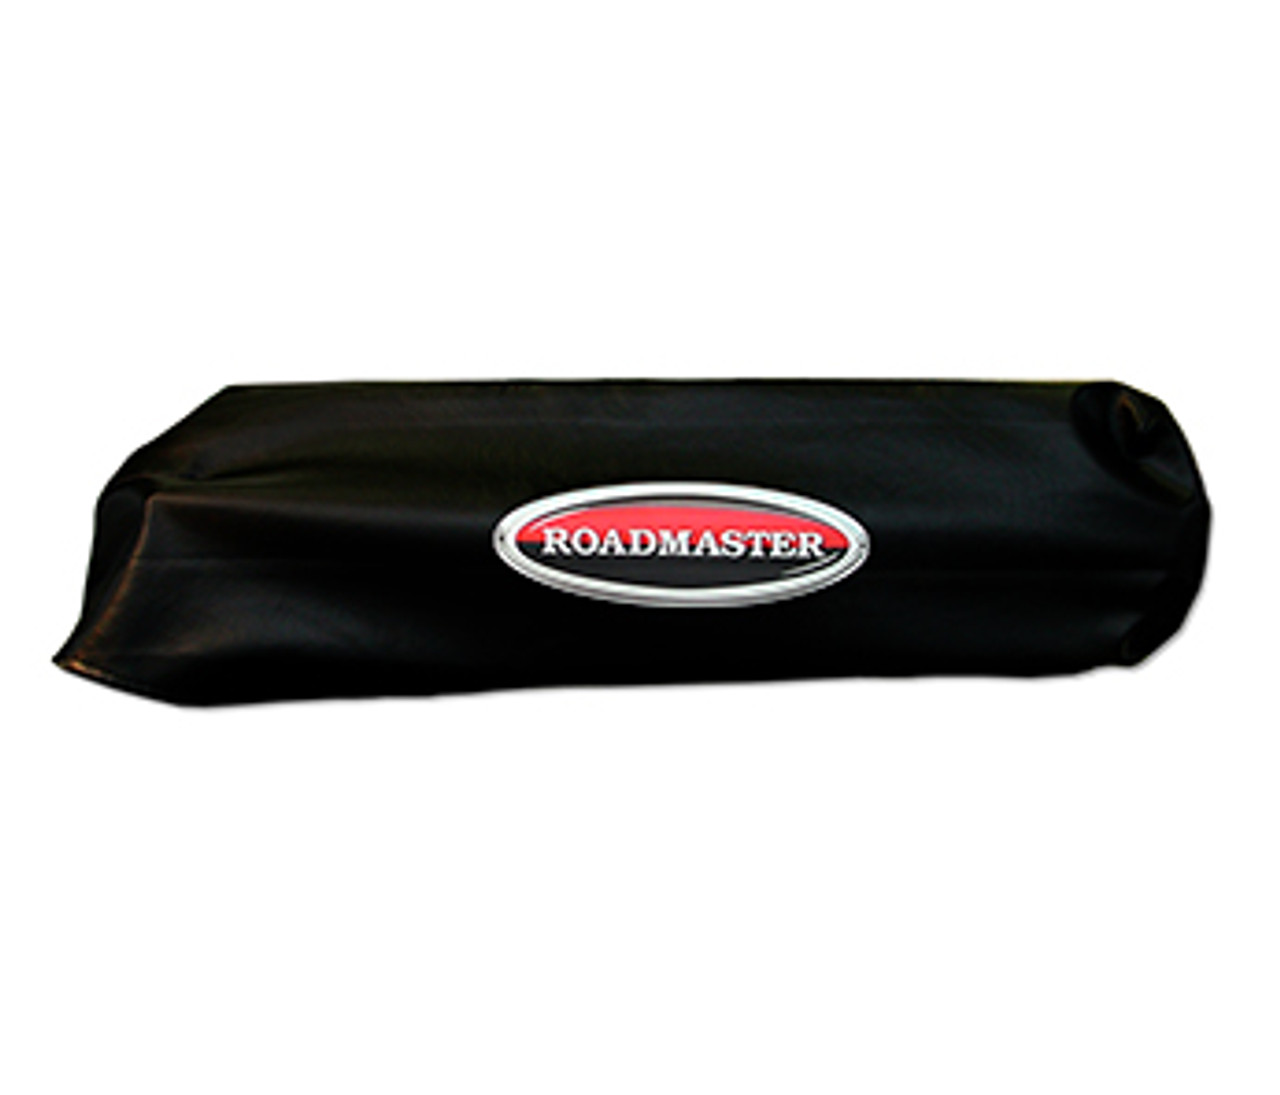 055-3 --- Roadmaster Tow Bar Cover for All Motorhome-Mounted Towbars